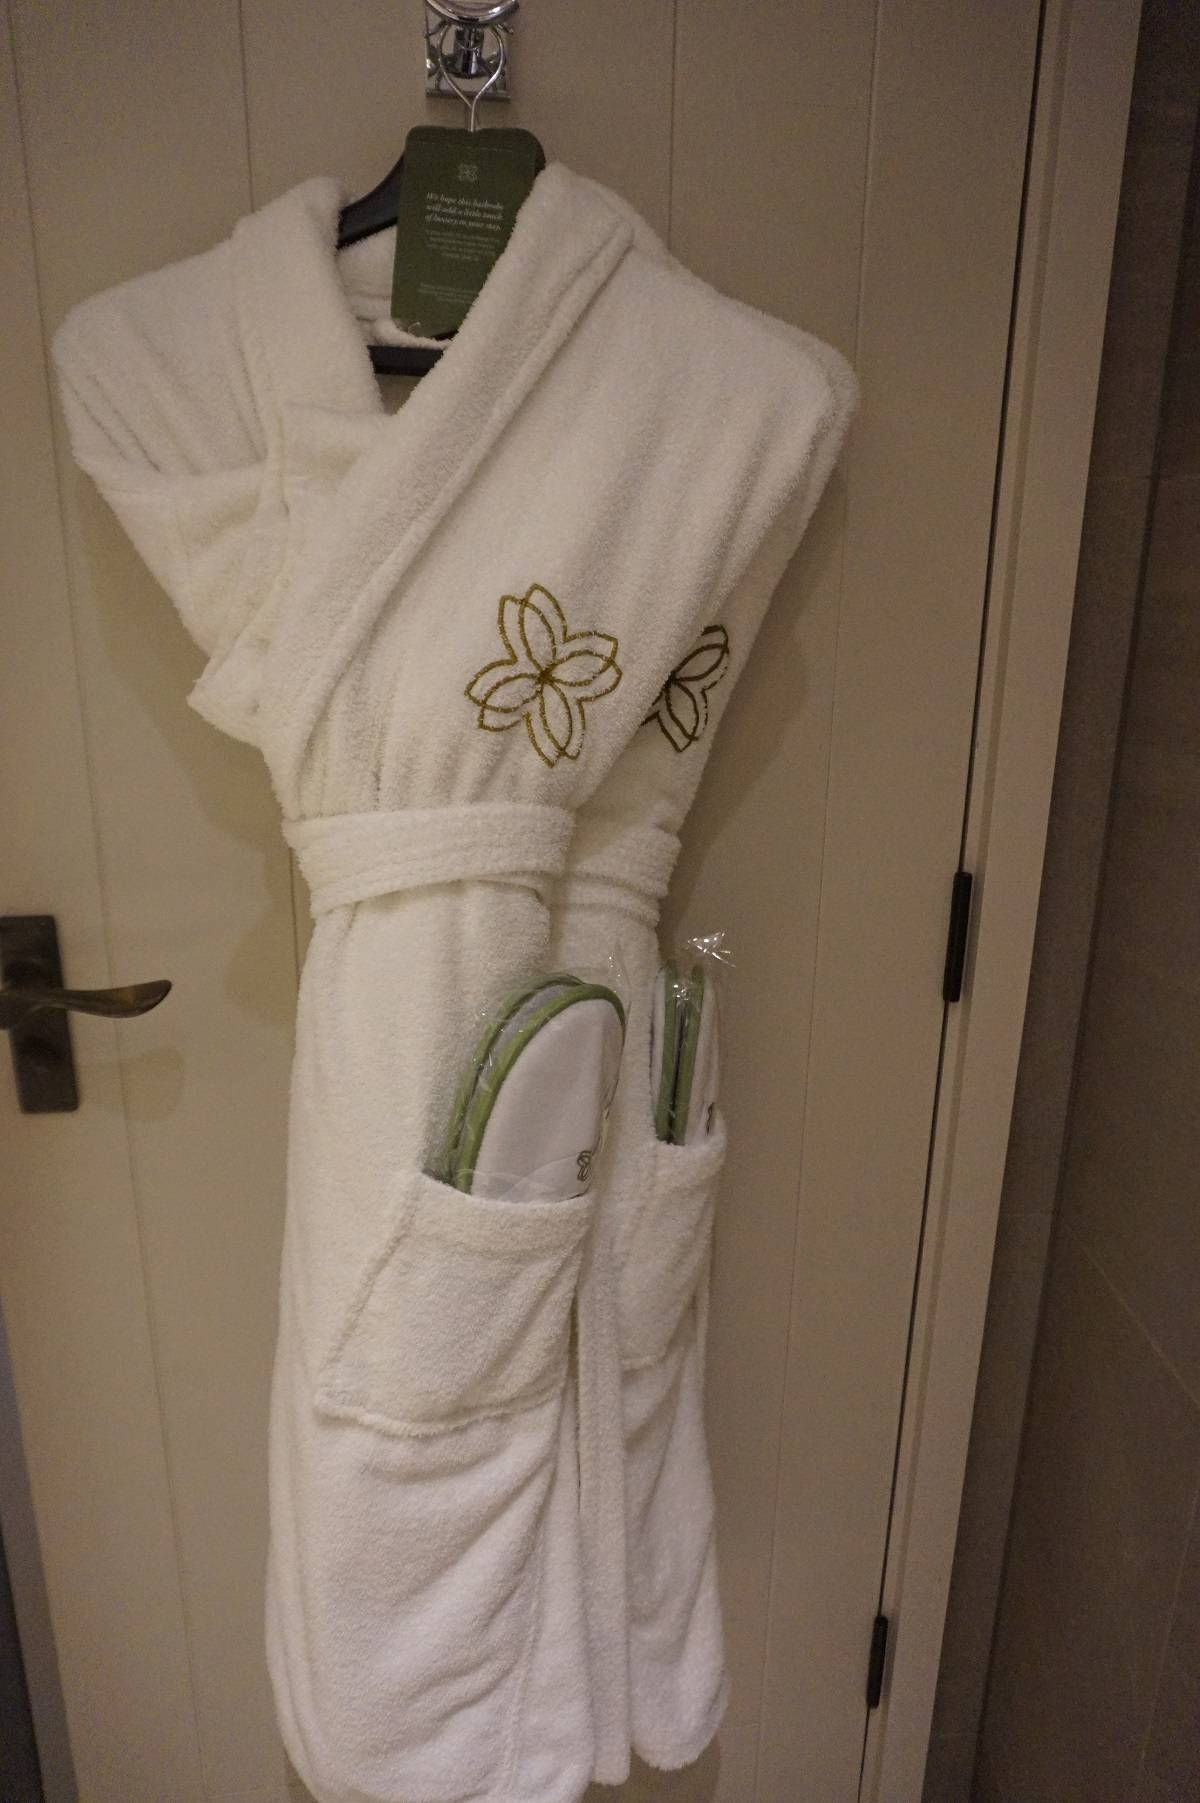 Bath robes and slippers